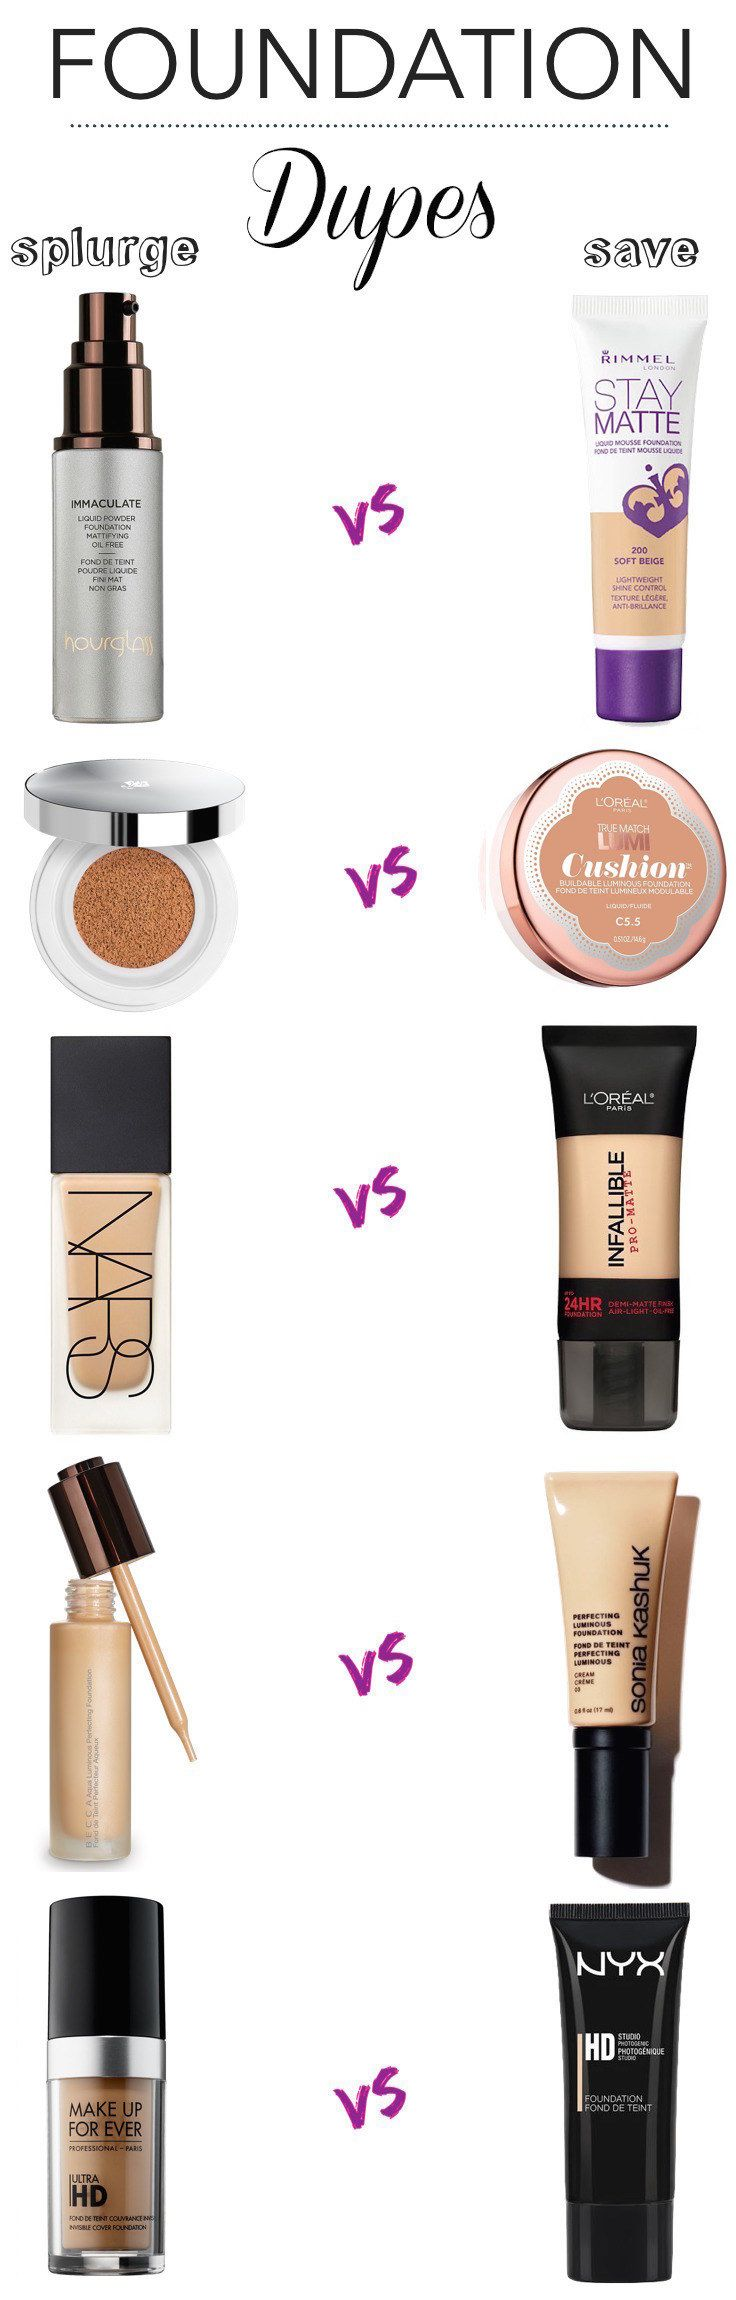 17 Foundation Tips For Beginners That'll Make Your Face Glow